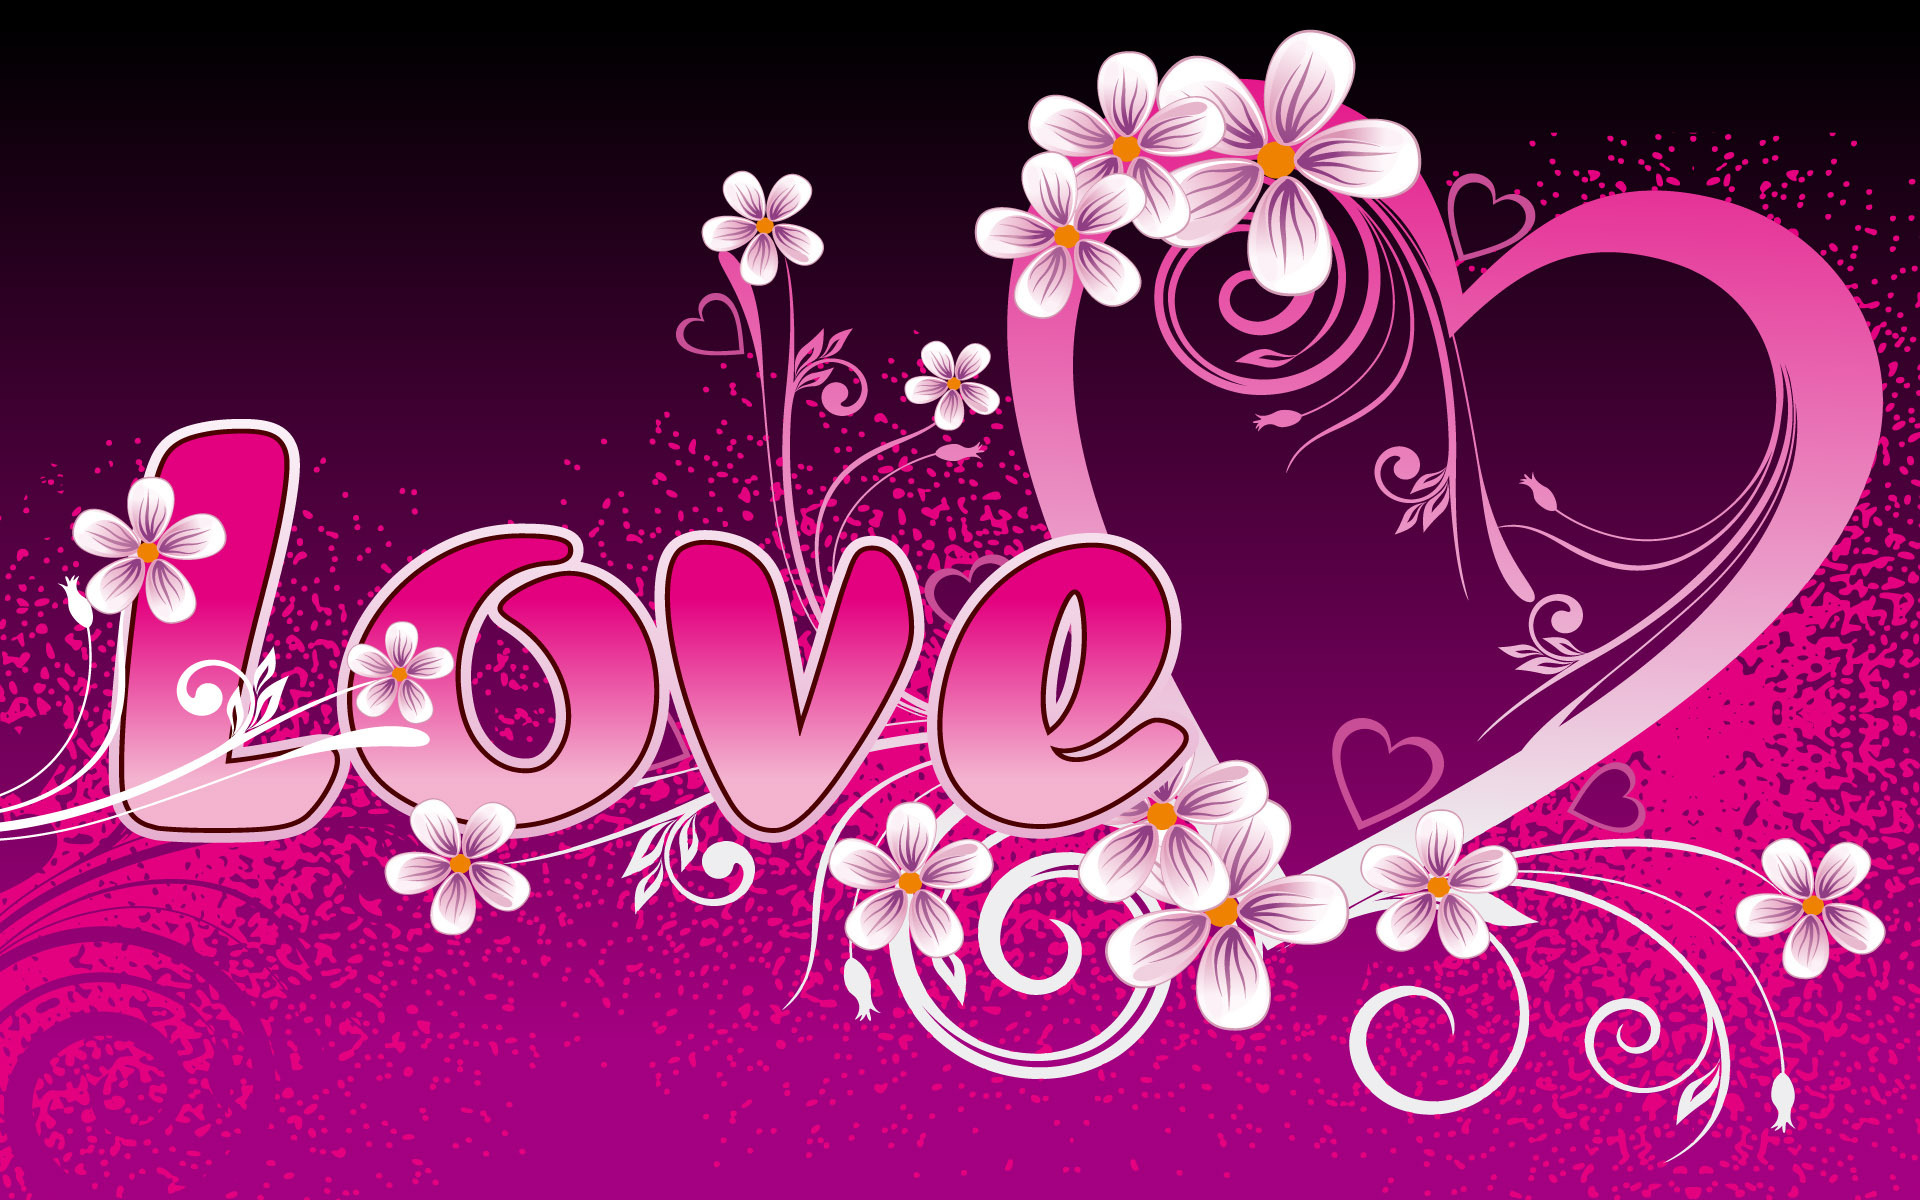 Love wallpaper - Love Wallpaper (4187641) - Fanpop